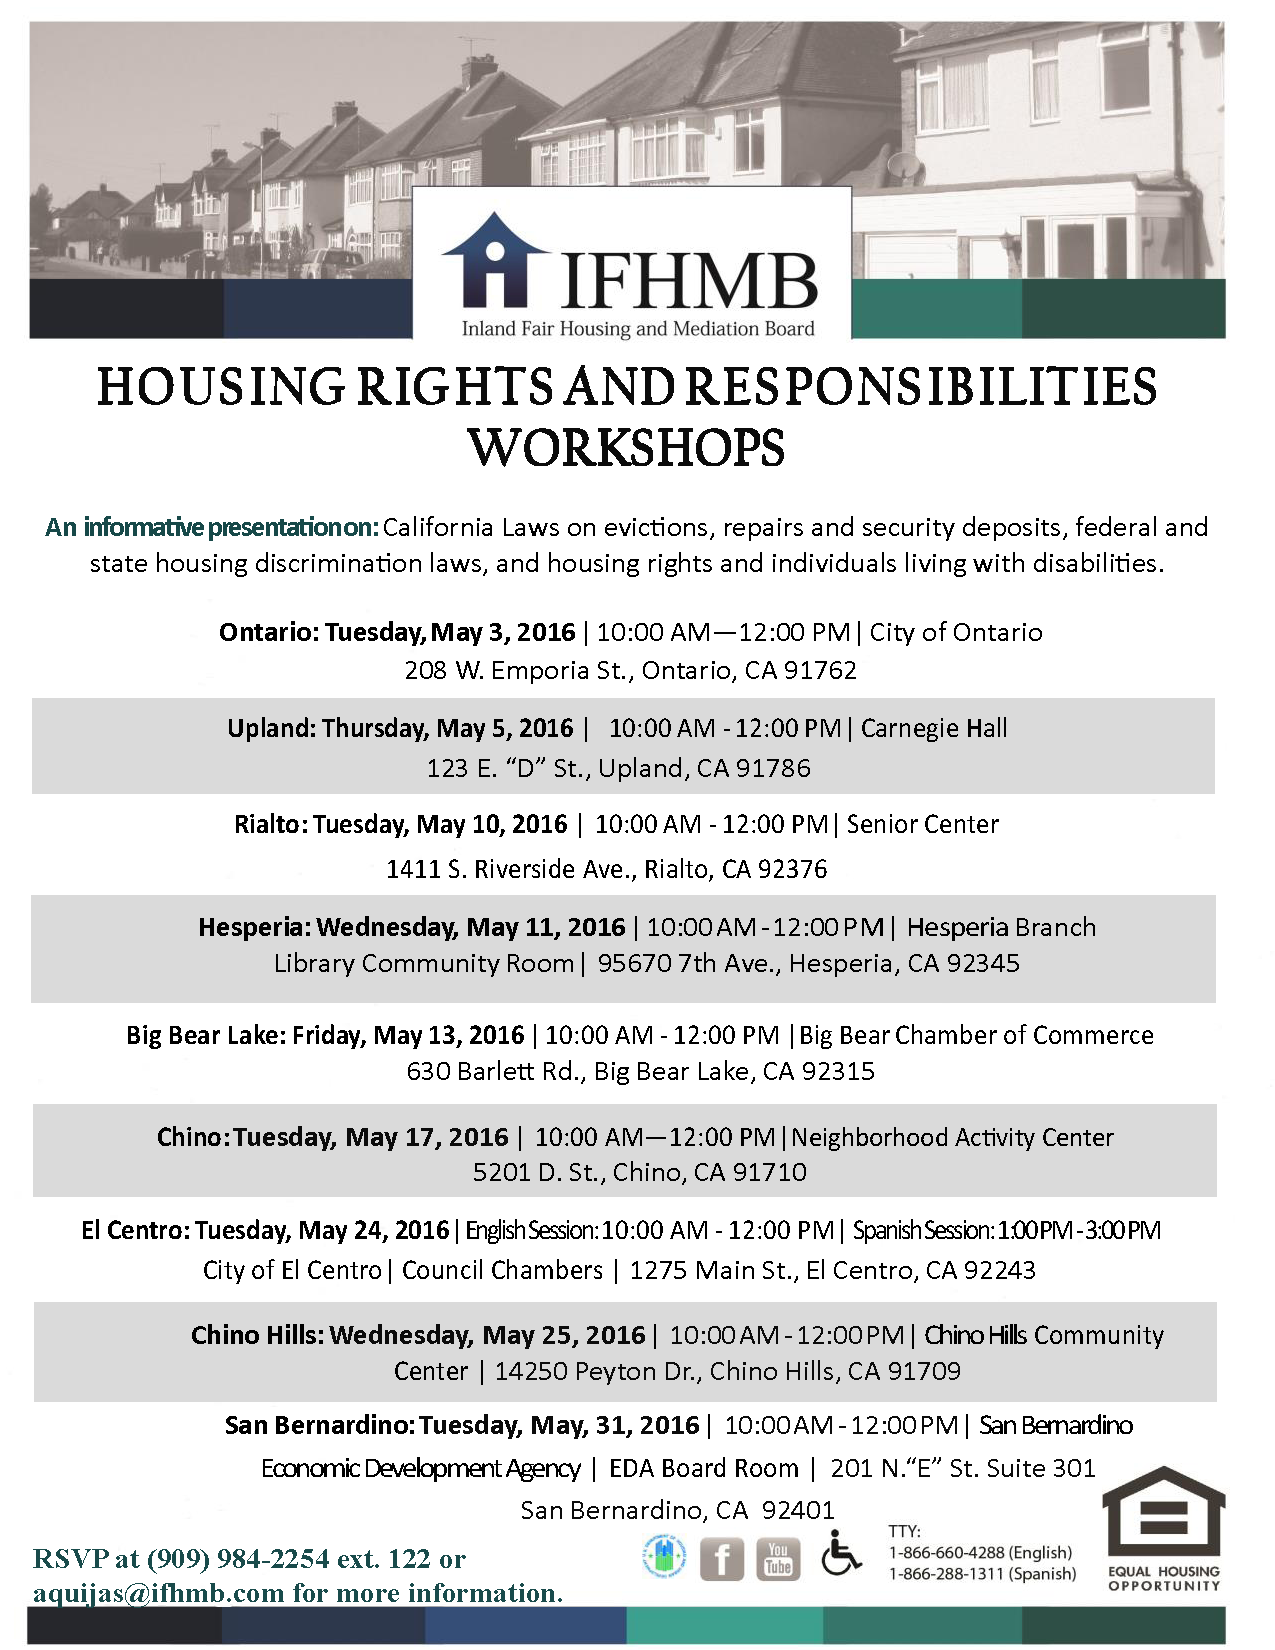 Housing rights and responsibilities workshops in May